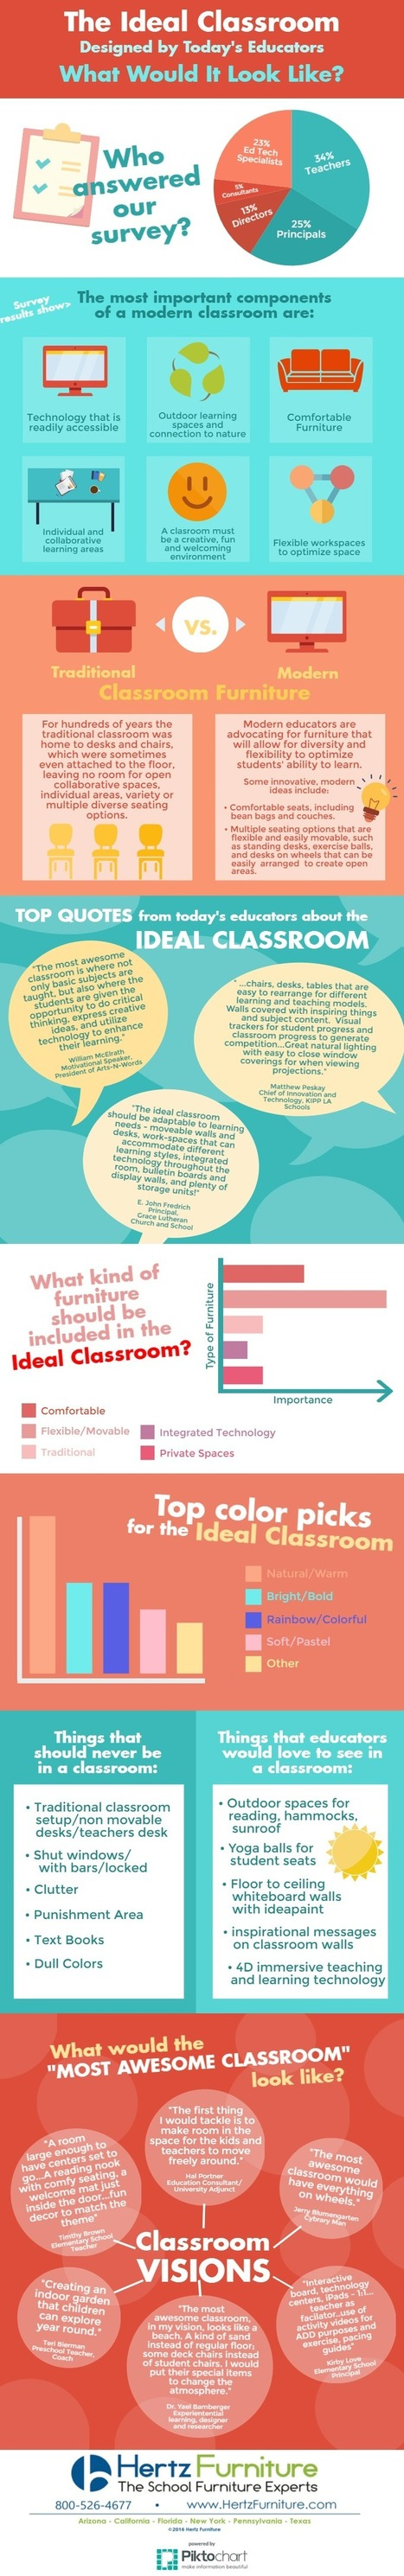 Designing The Ideal Classroom Infographic - e-Learning Infographics | Differentiated and ict Instruction | Scoop.it